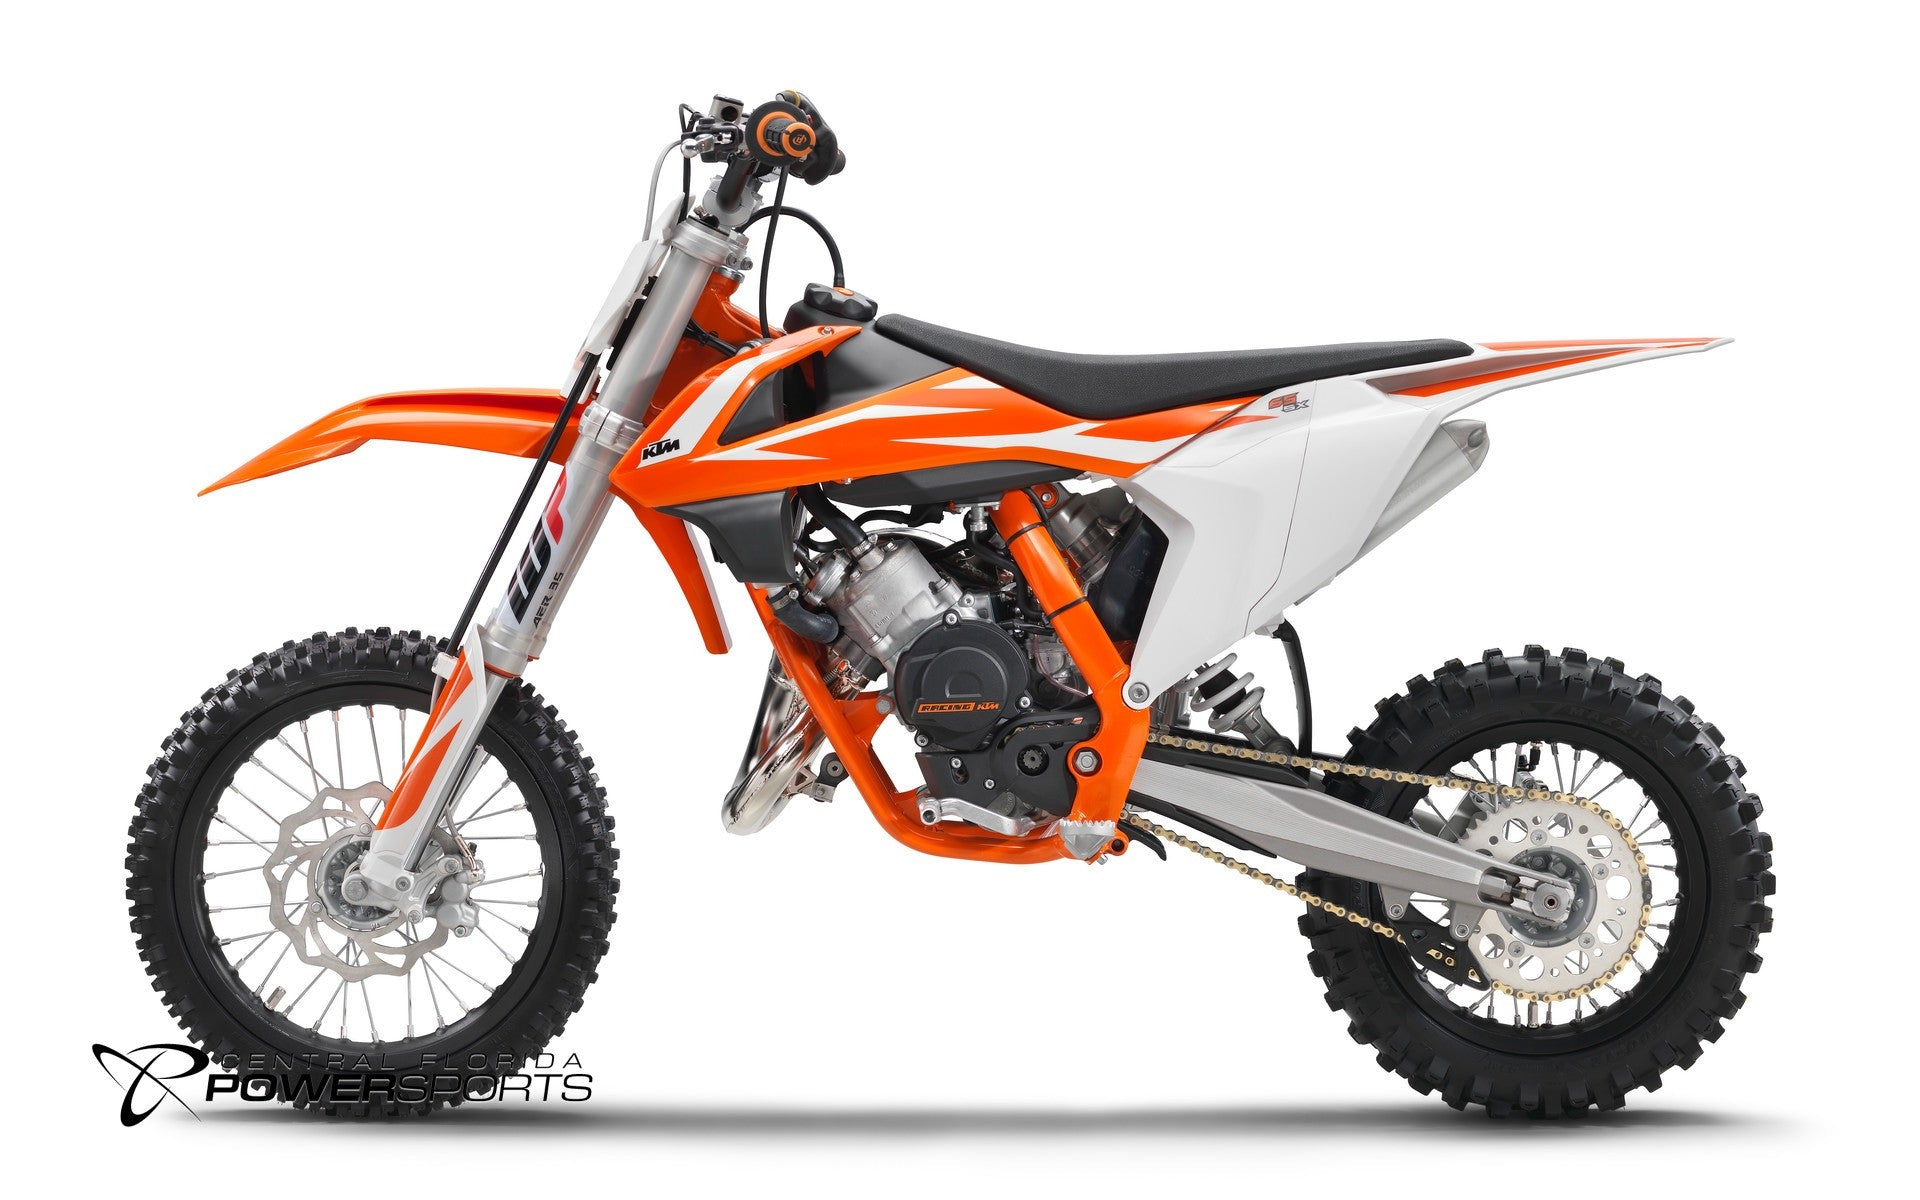 2018 ktm 65 sx motorcycle for young pilots 8 to 12 y o. Black Bedroom Furniture Sets. Home Design Ideas